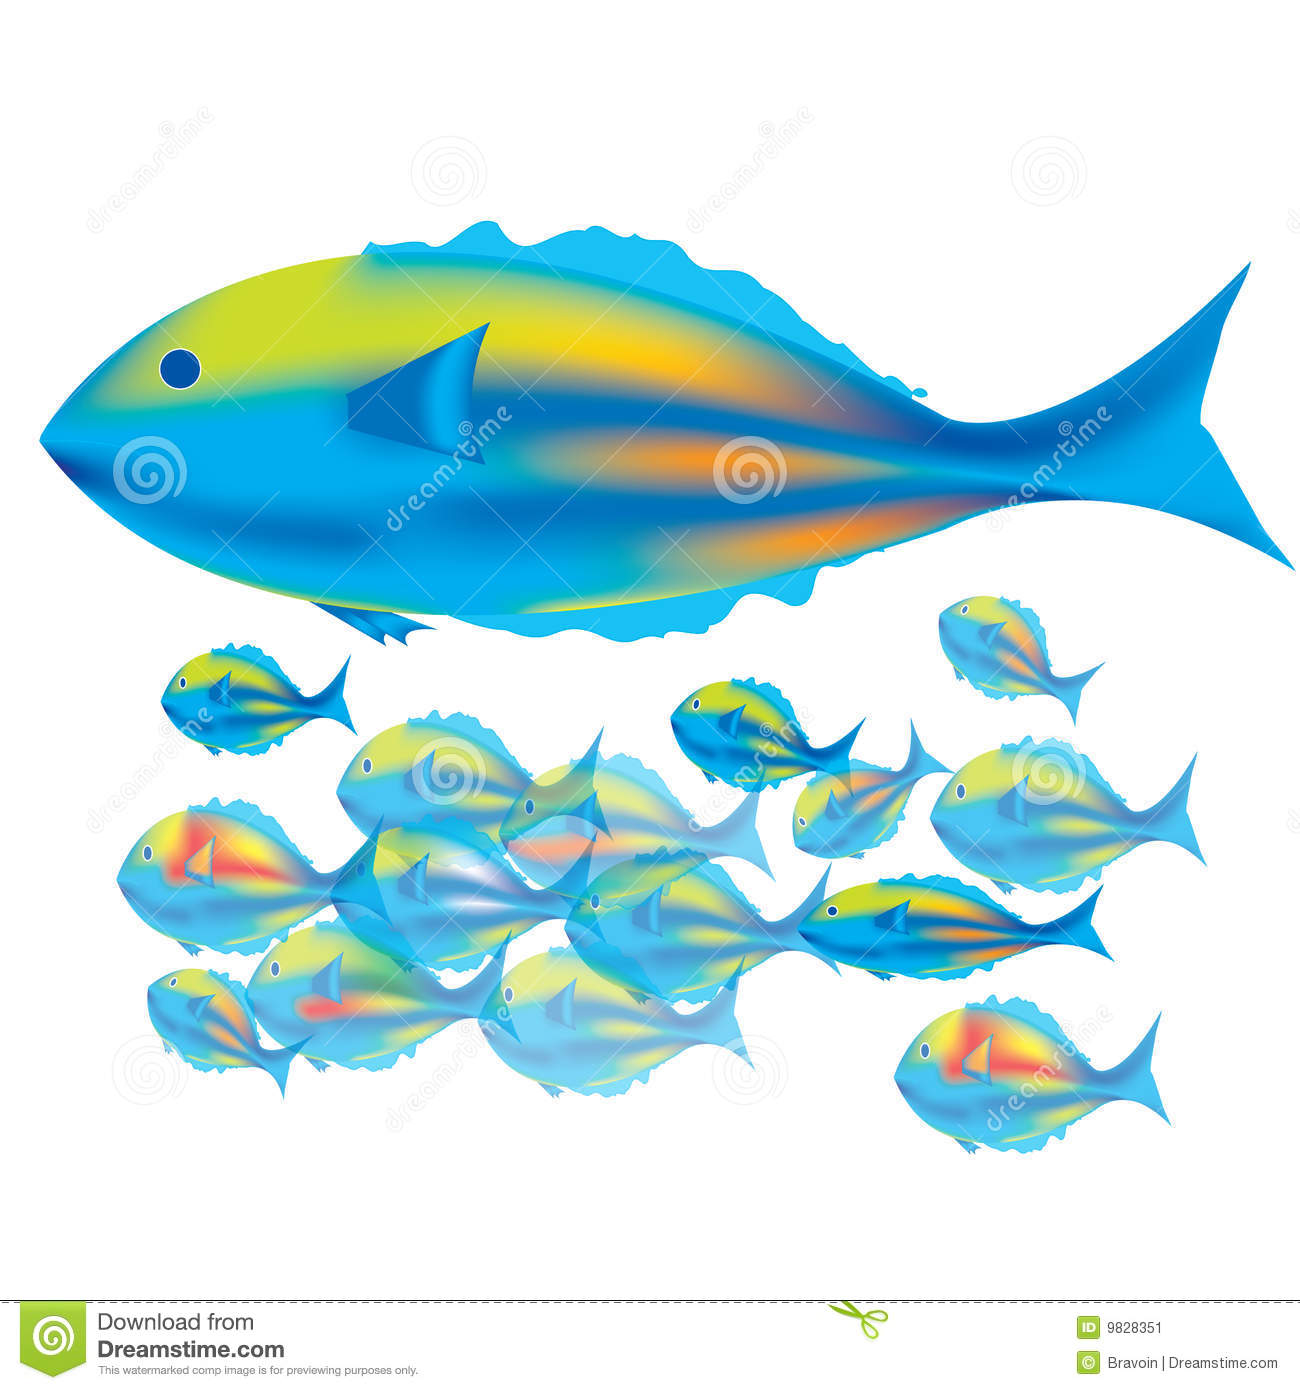 Baby Fish Clipart Mother fish & baby fishes Cute Baby Fish